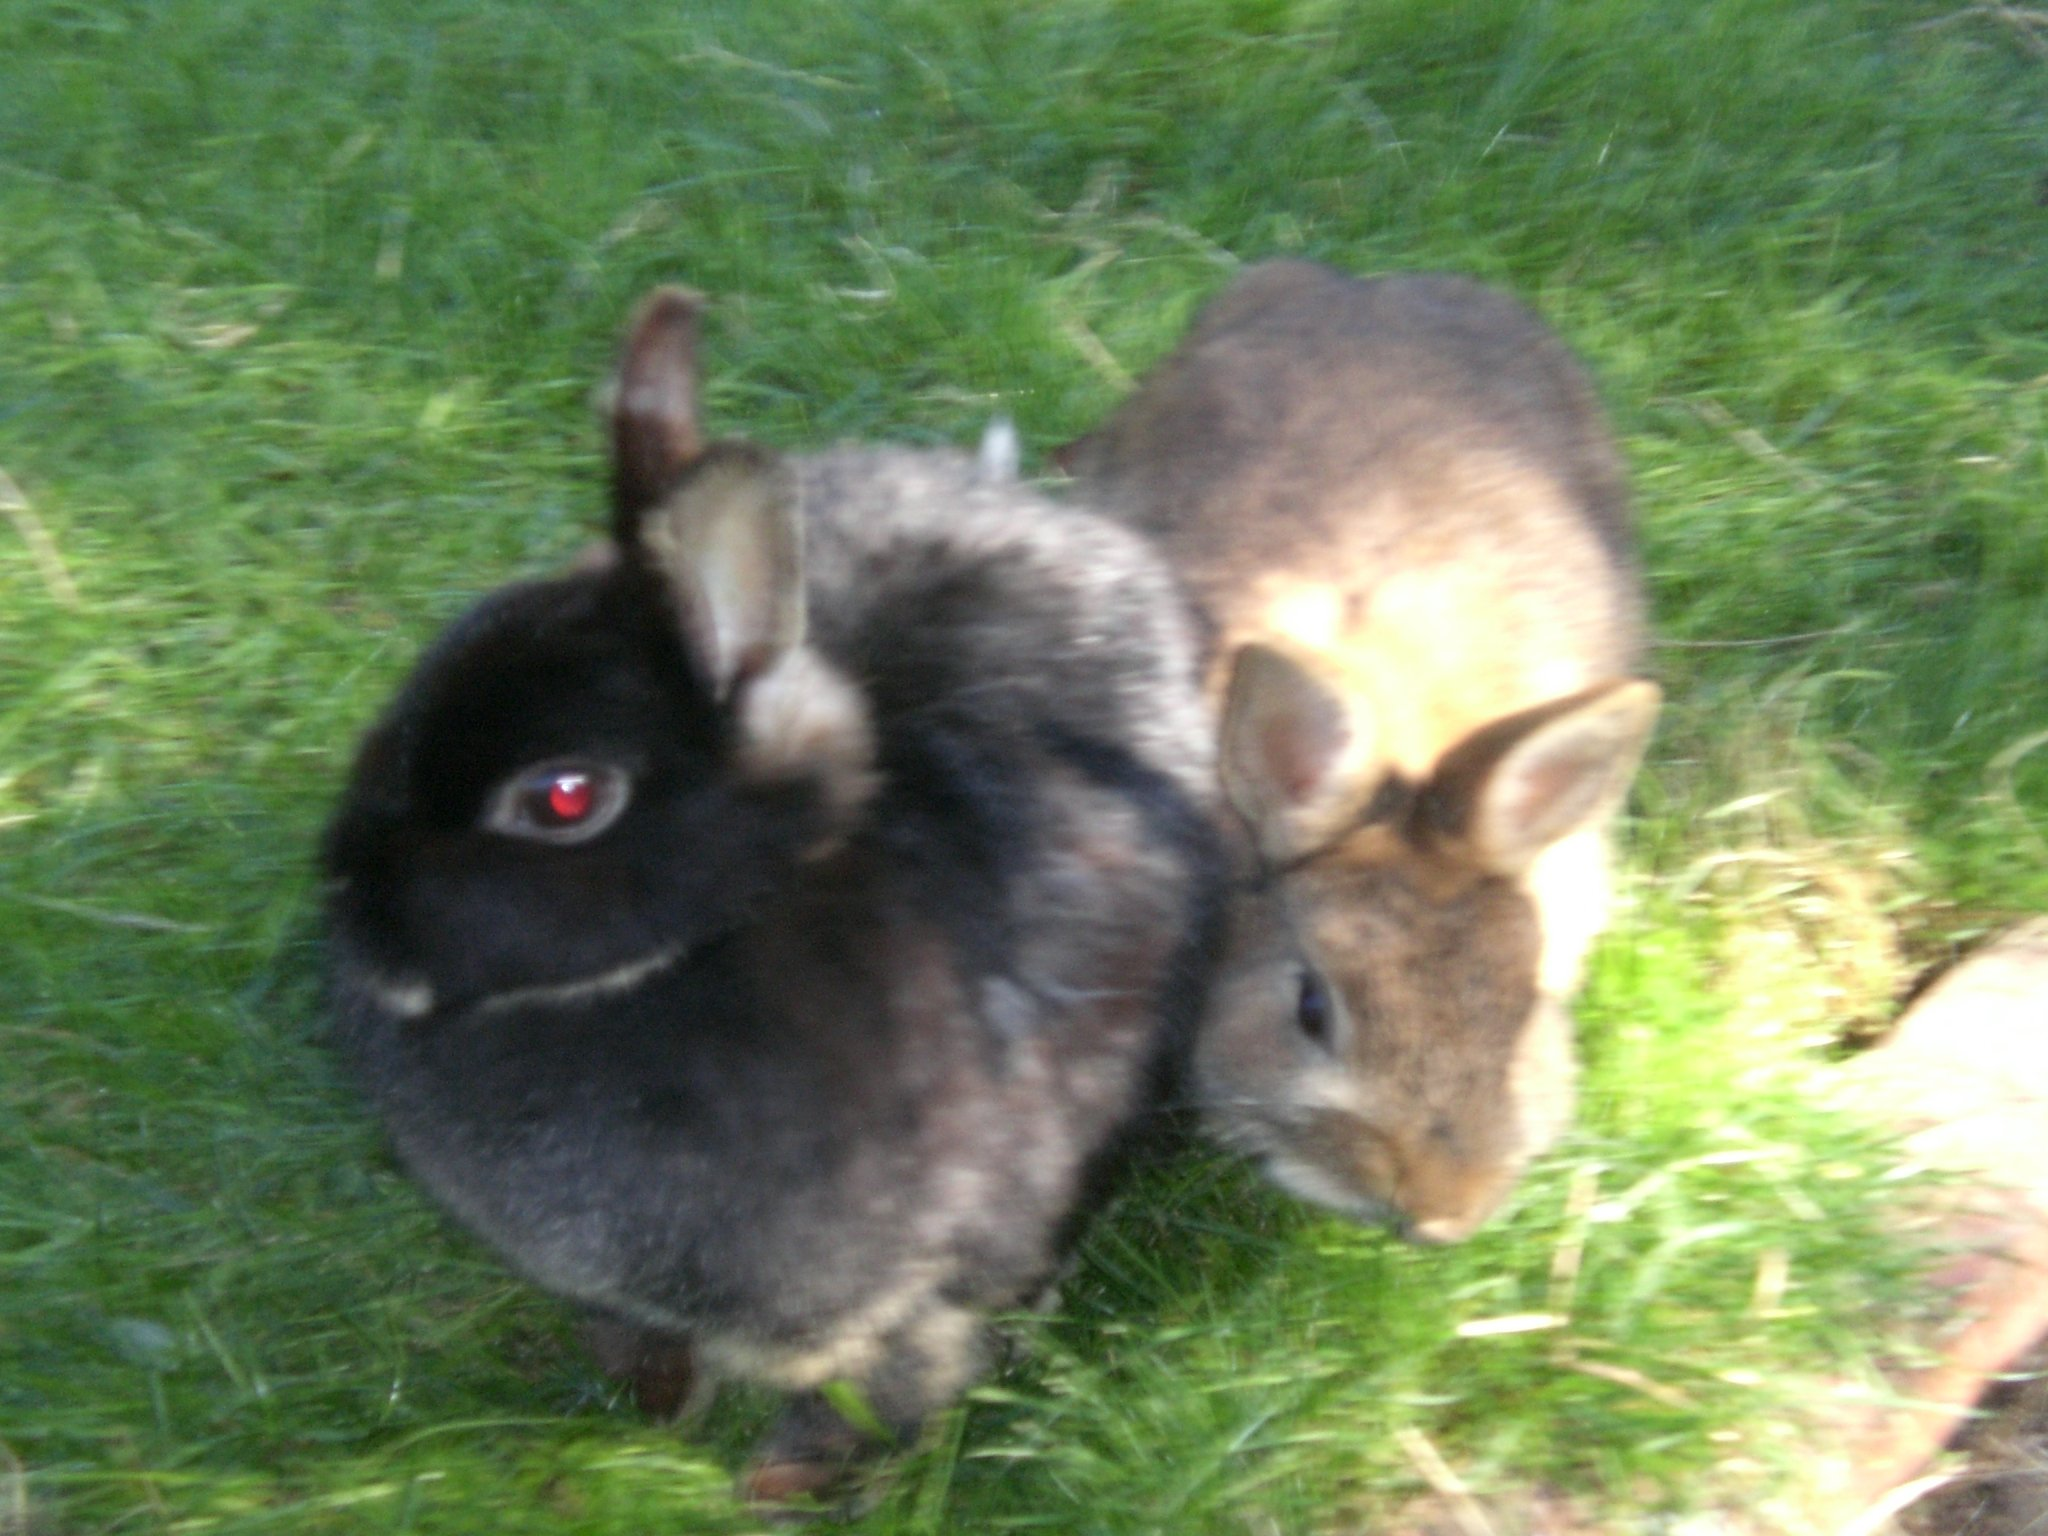 rabbits resting together